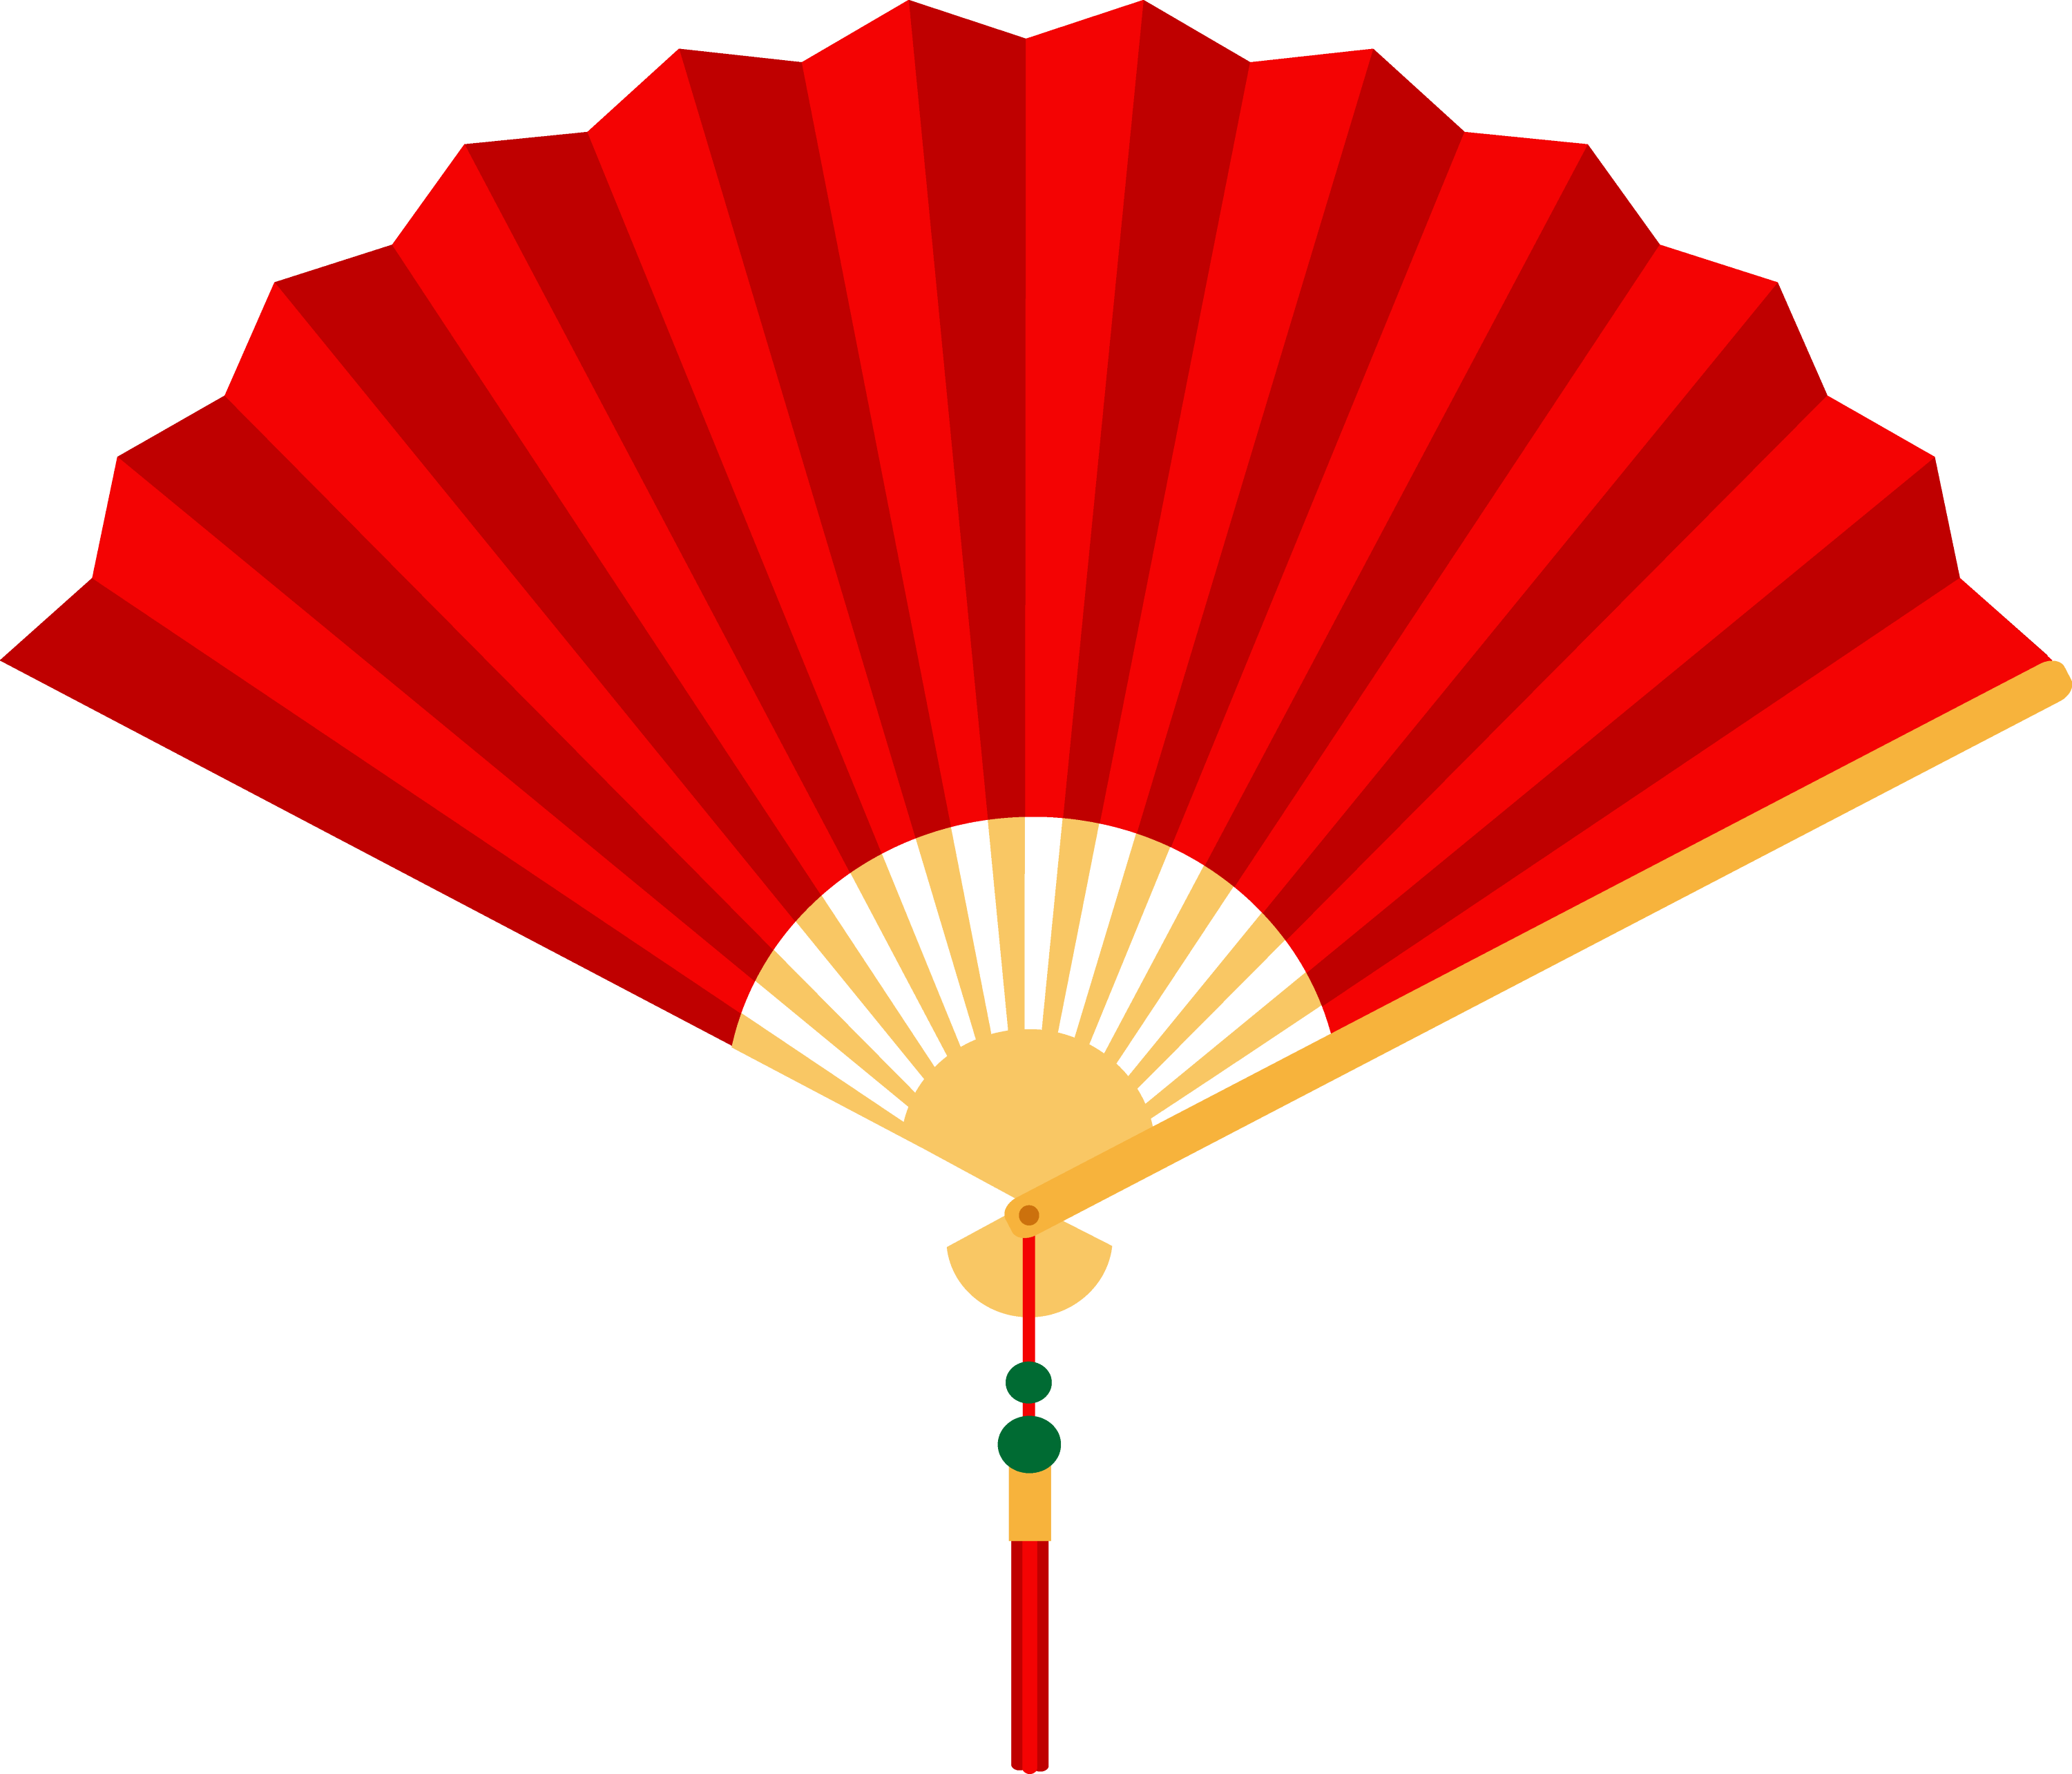 Red Chinese Hand Fan - Free Clip Art